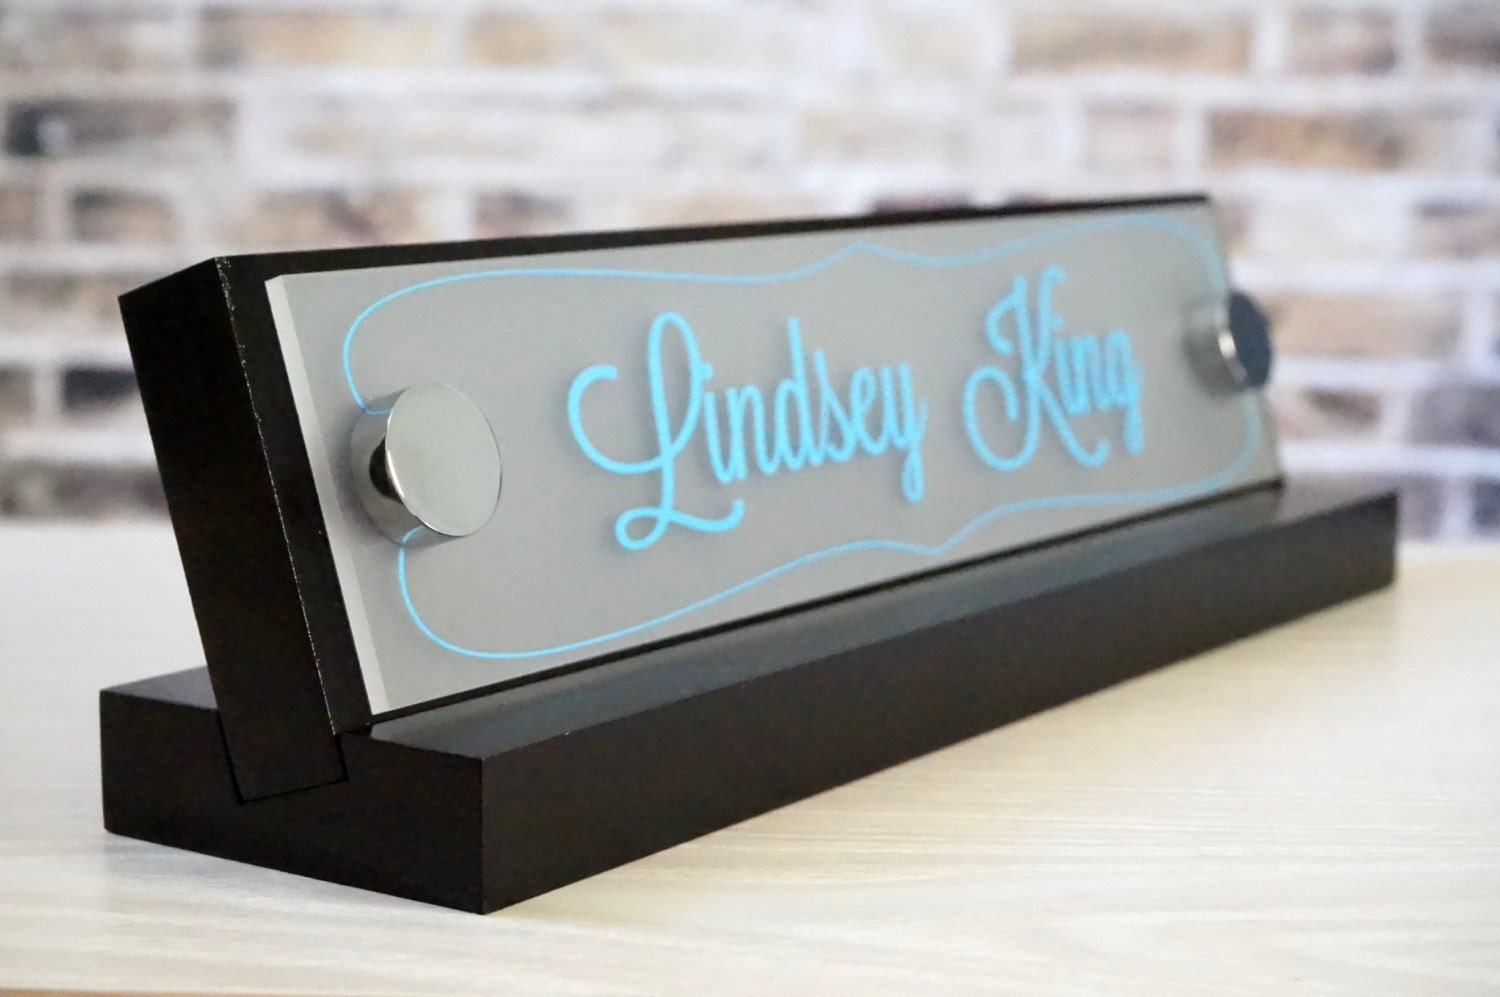 Made By Garo Signs Desk Name Plate 10 X 25. Kitchen Knobs And Drawer Pulls. Glass Top Tables. Rug Under Kitchen Table. Walmart Desks Canada. Counter Height Breakfast Table. Diy Architect Desk. Bistro Tables. Round Dinner Table For 4